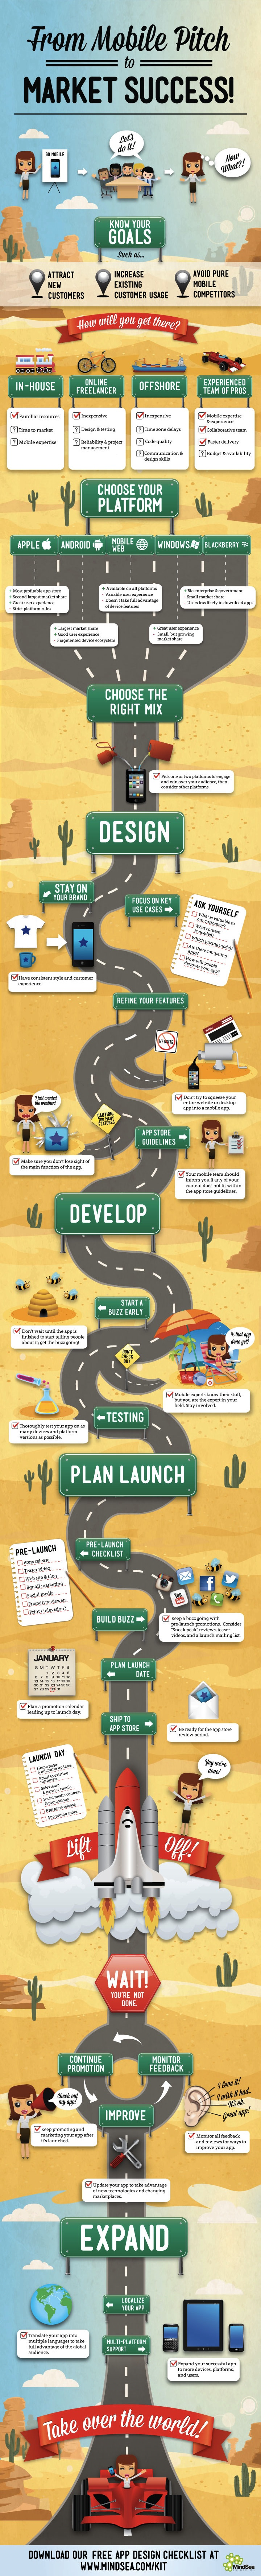 Mobile App Development: From Idea to Market Success - Infographic